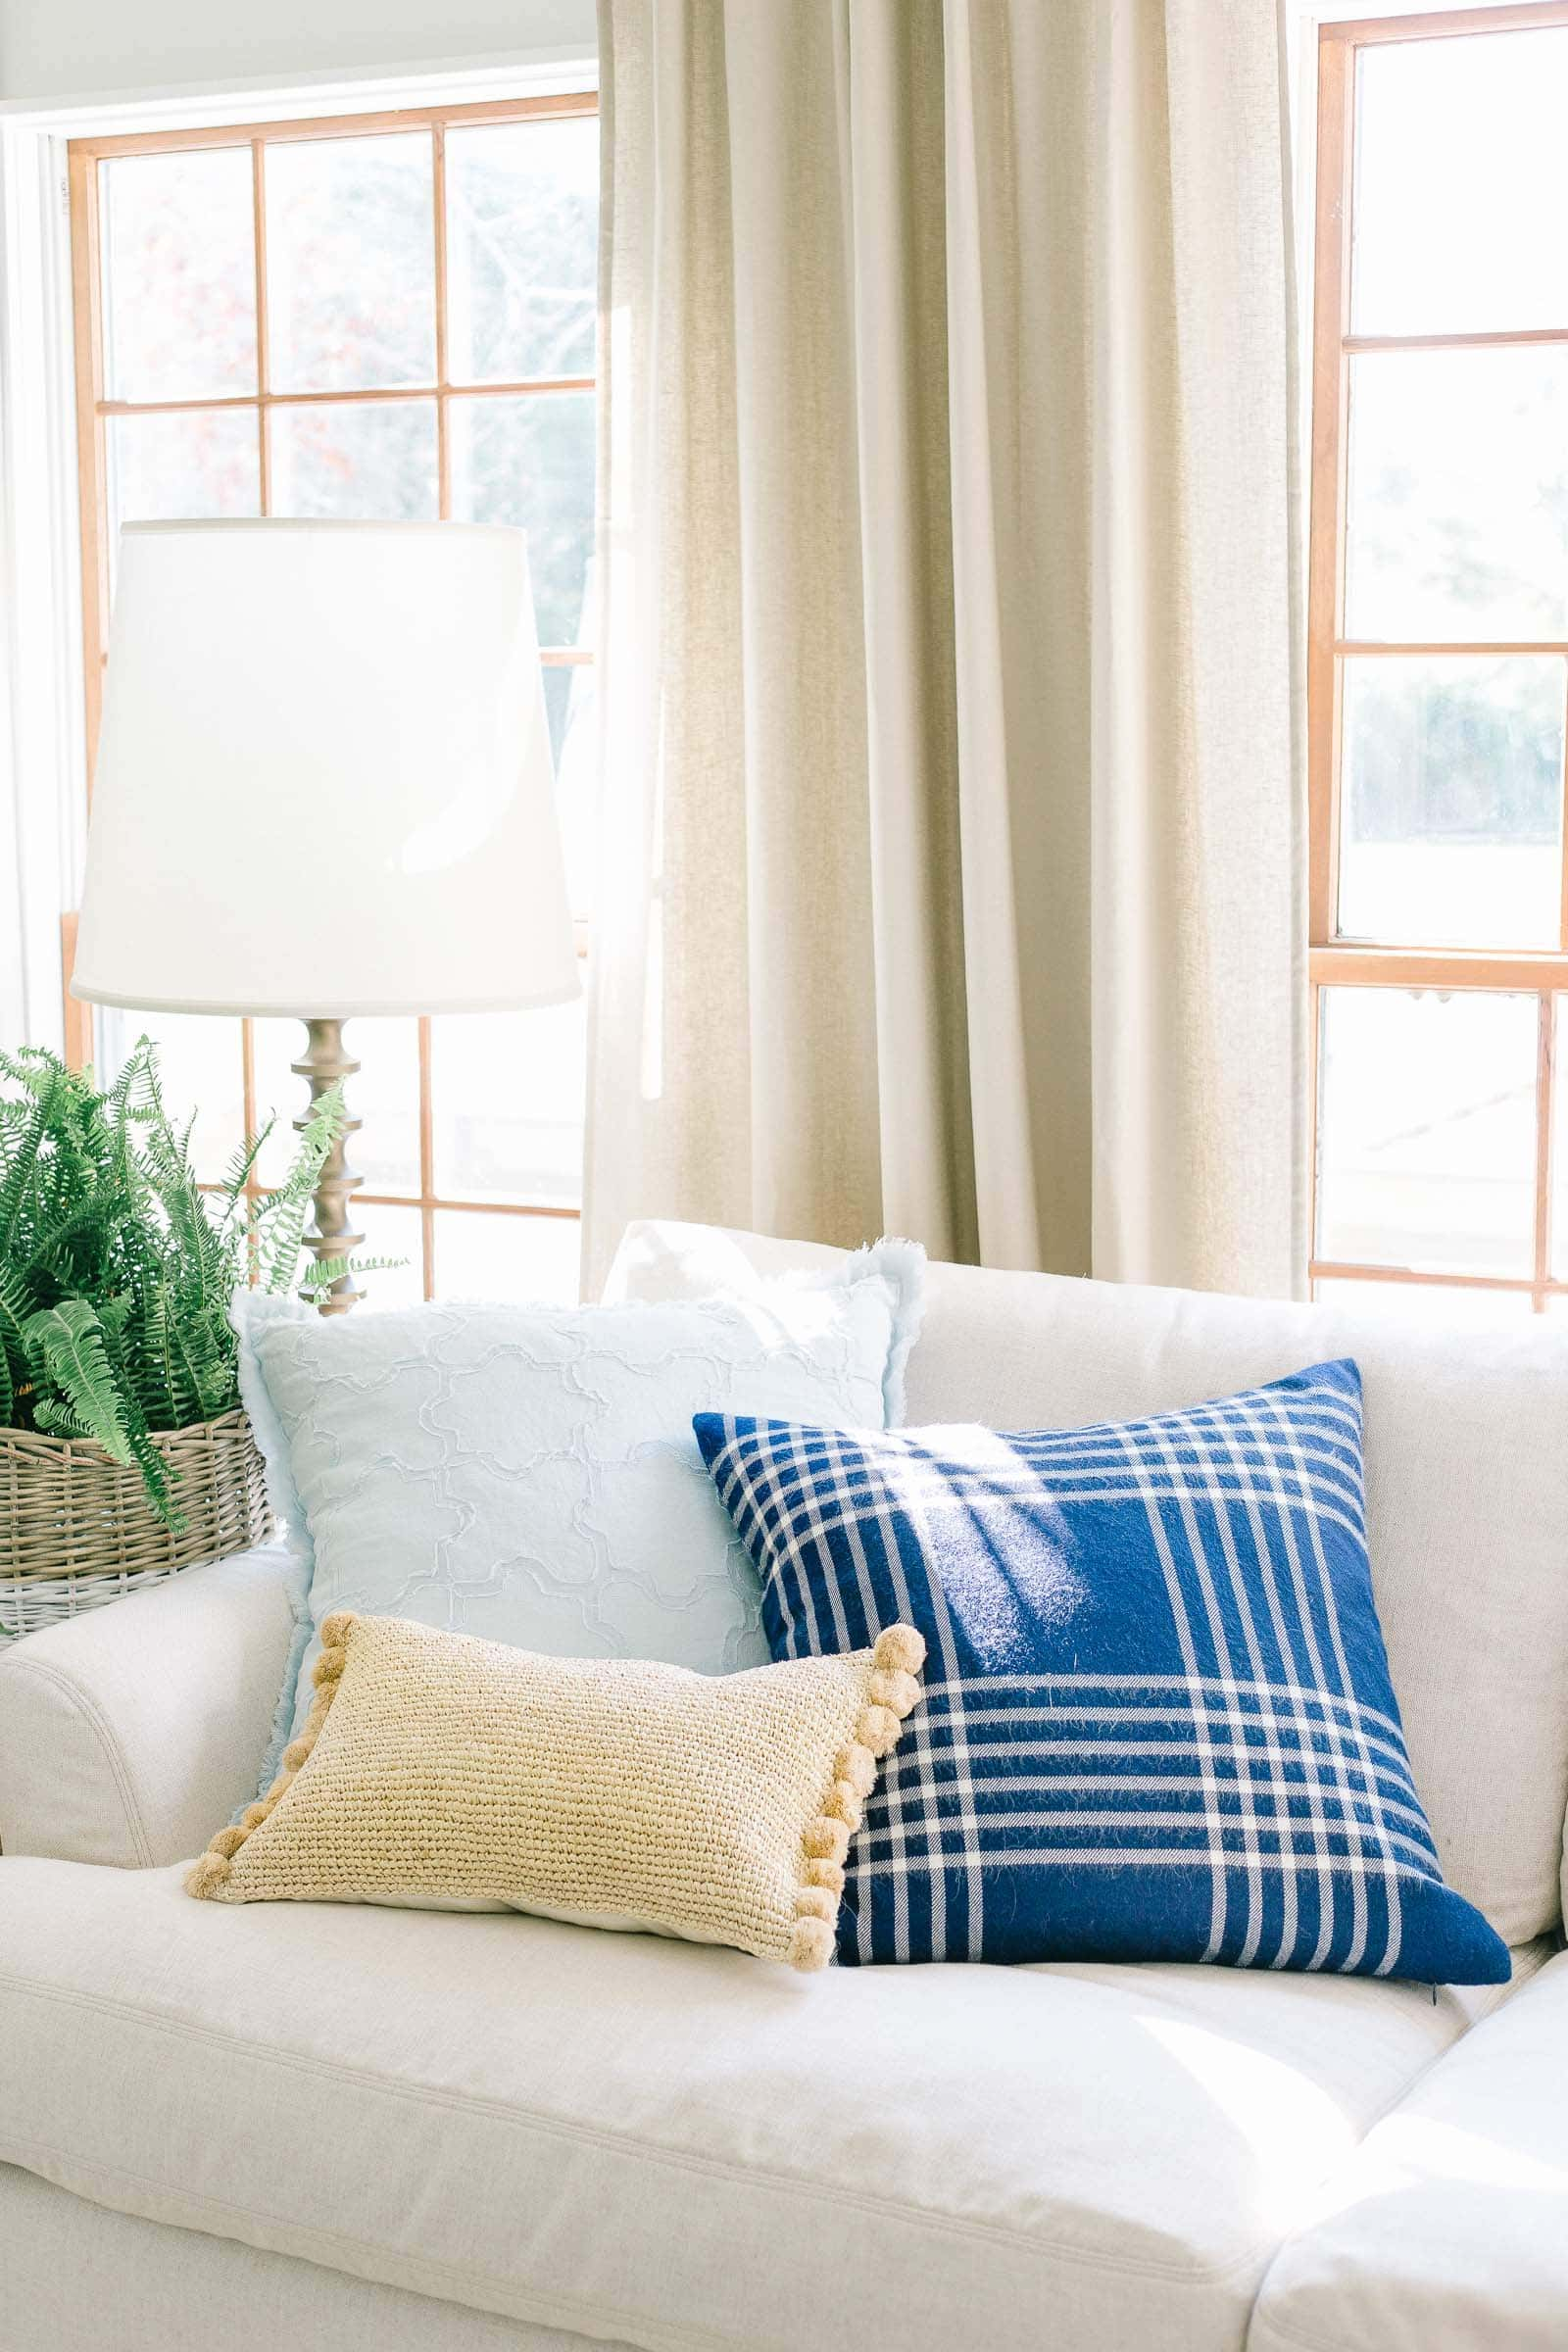 chambray blue pillow and navy blue plaid pillow on sectional sofa